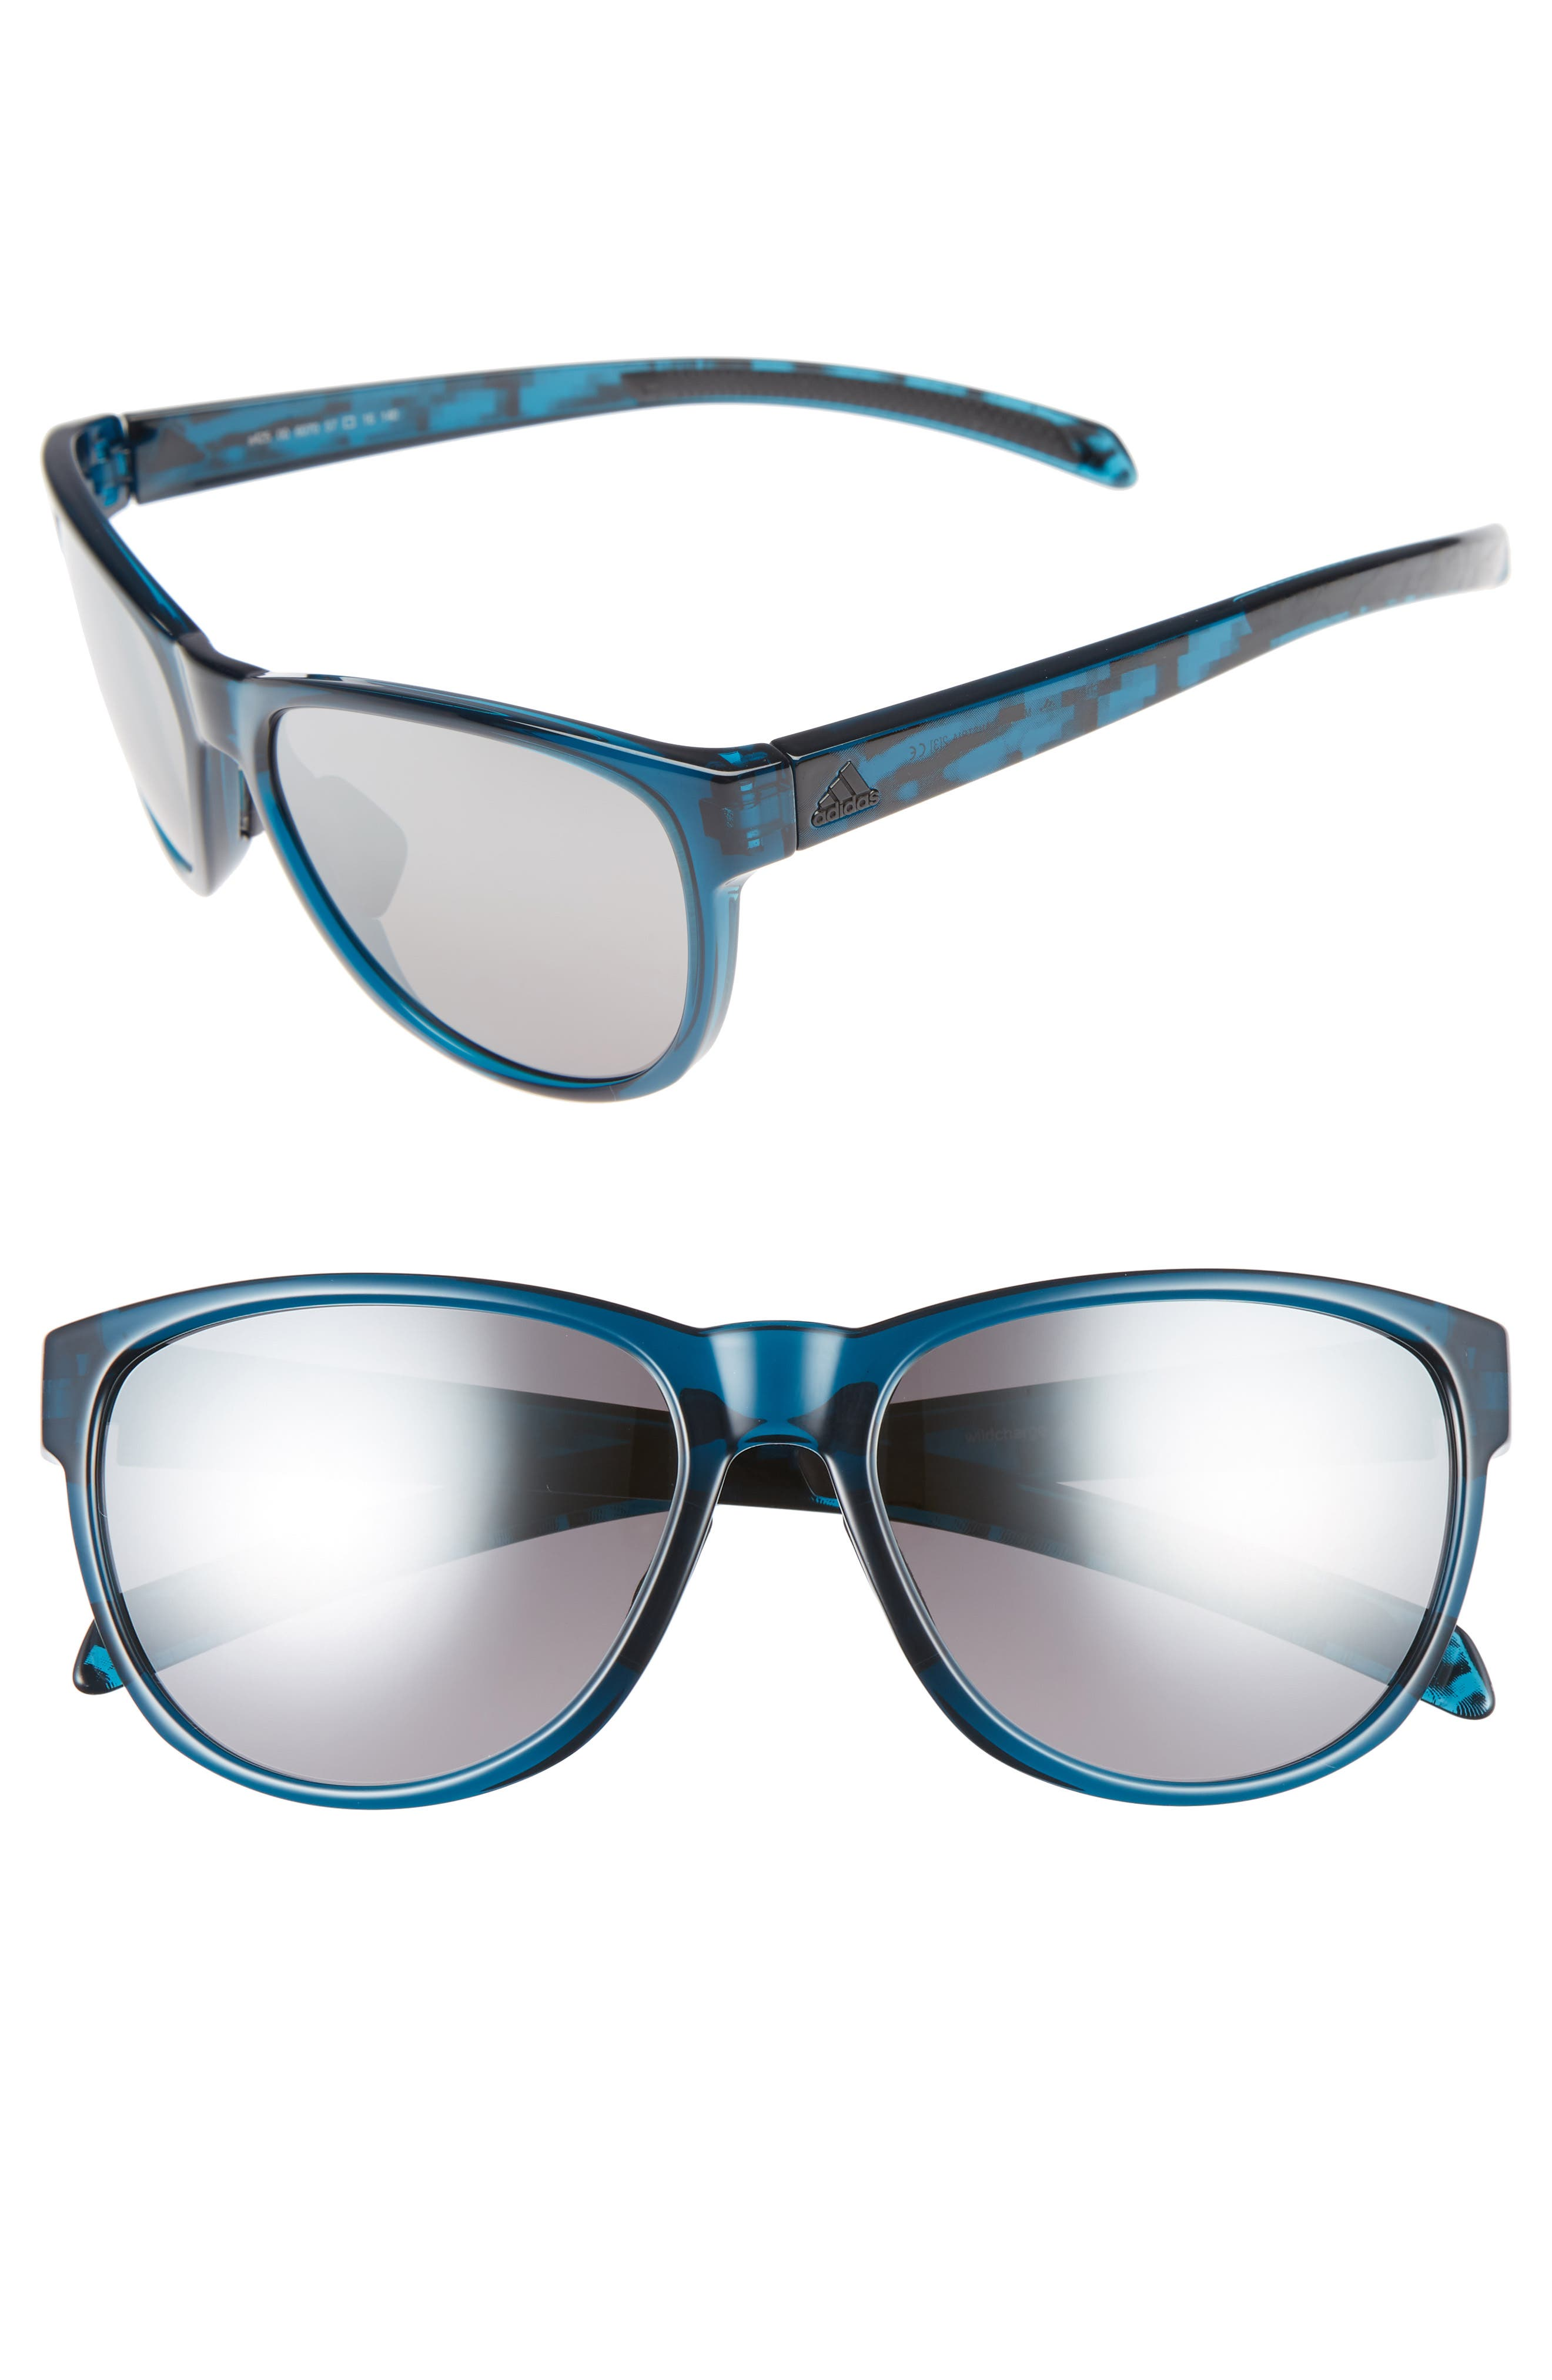 Wildcharge 61mm Mirrored Sunglasses,                         Main,                         color, 400